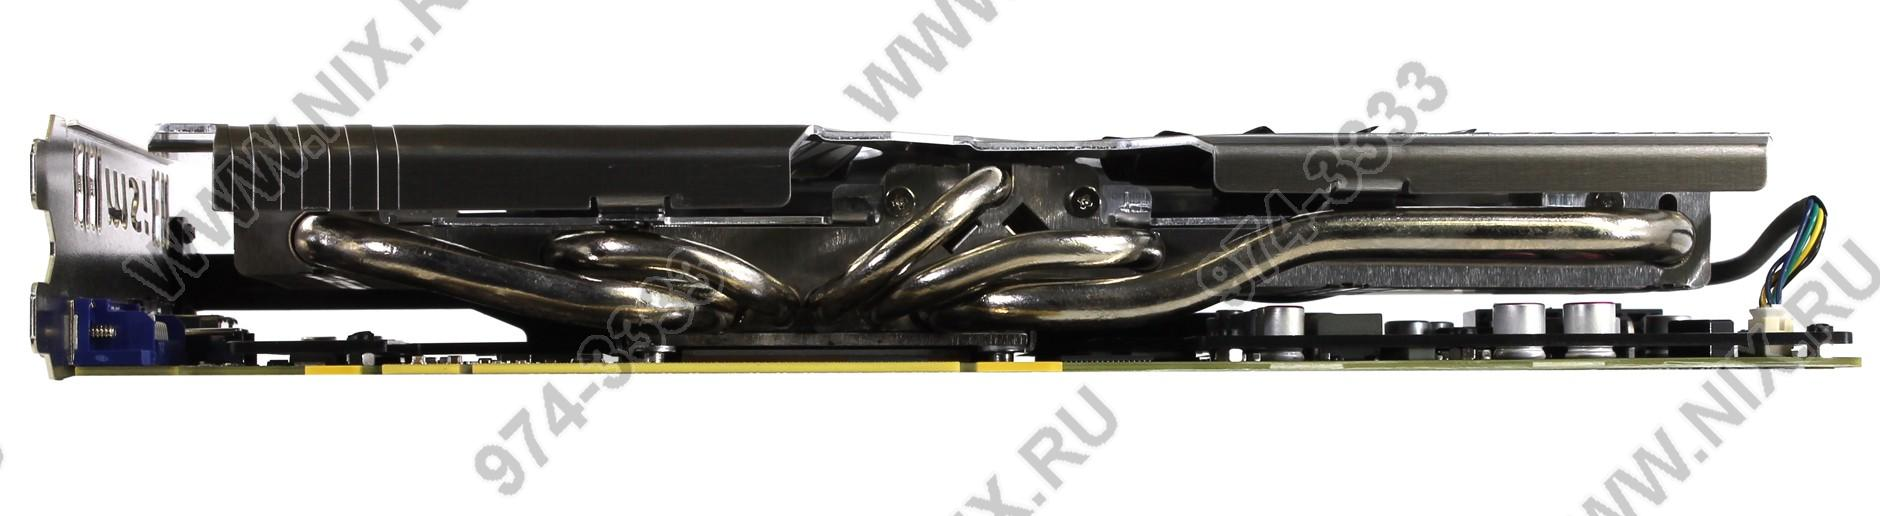 Видеокарта msi radeon hd 7950 3072mb twin frozriii (r7950 twin frozr 3gd5 v2/ oc)